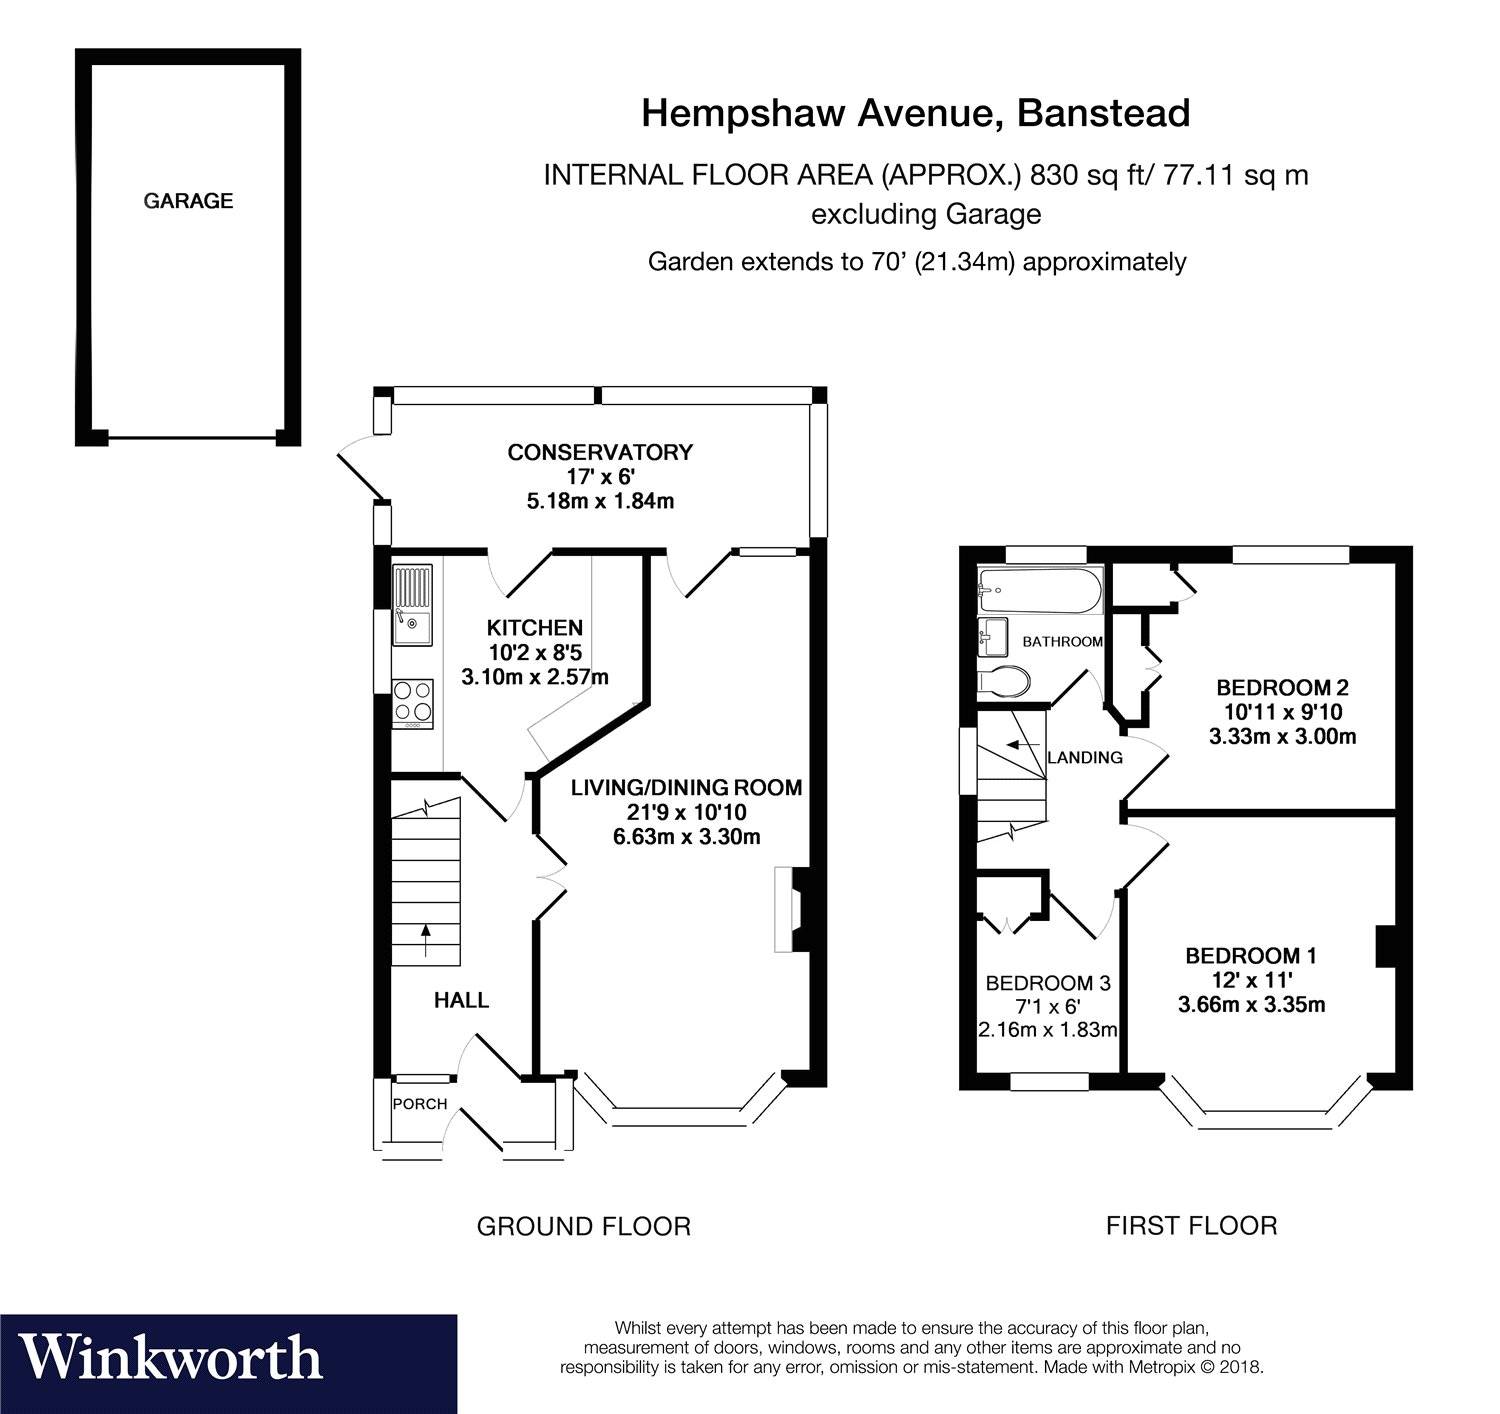 3 Bedrooms Semi-detached house for sale in Hempshaw Avenue, Banstead, Surrey SM7